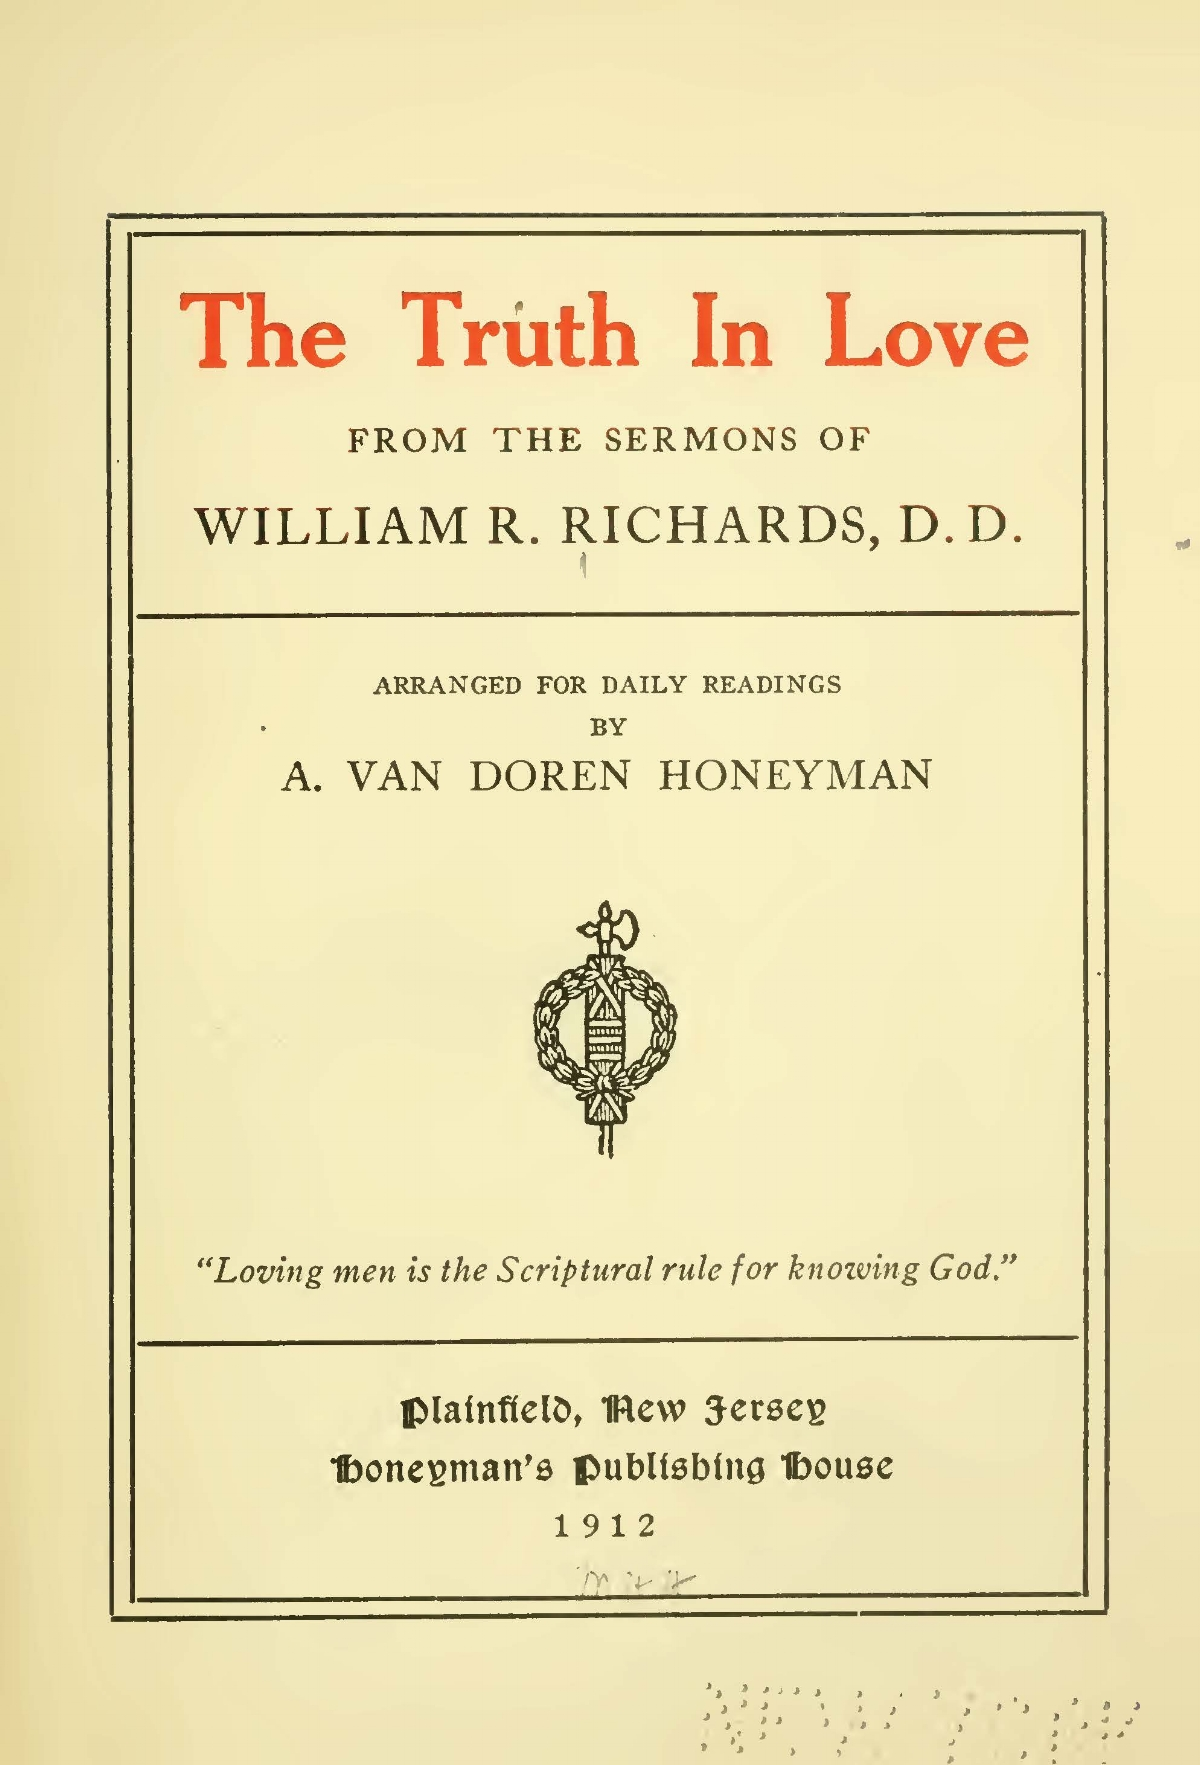 Richards, William Rogers, The Truth in Love From the Sermons of William R. Richards Title Page.jpg